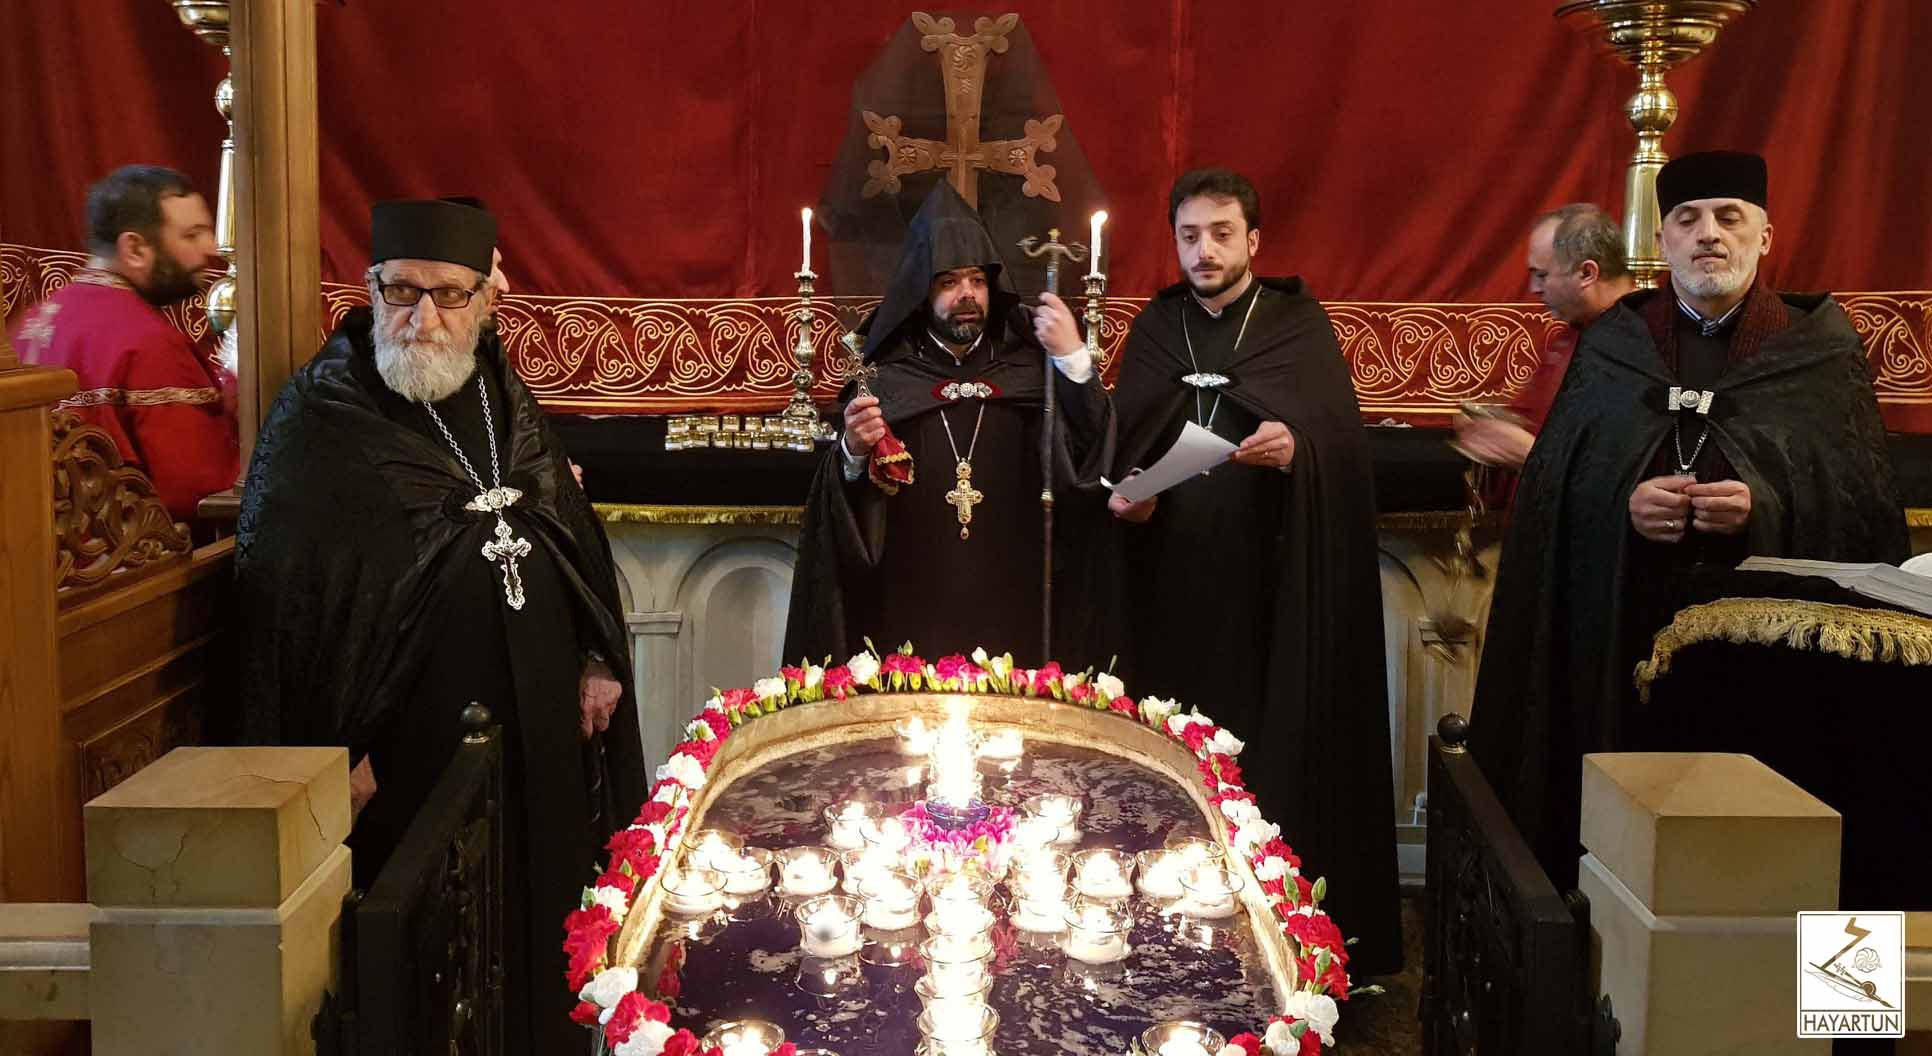 The Commemoration of the Forty Holy Martyrs was celebrated at the Armenian Diocese in George